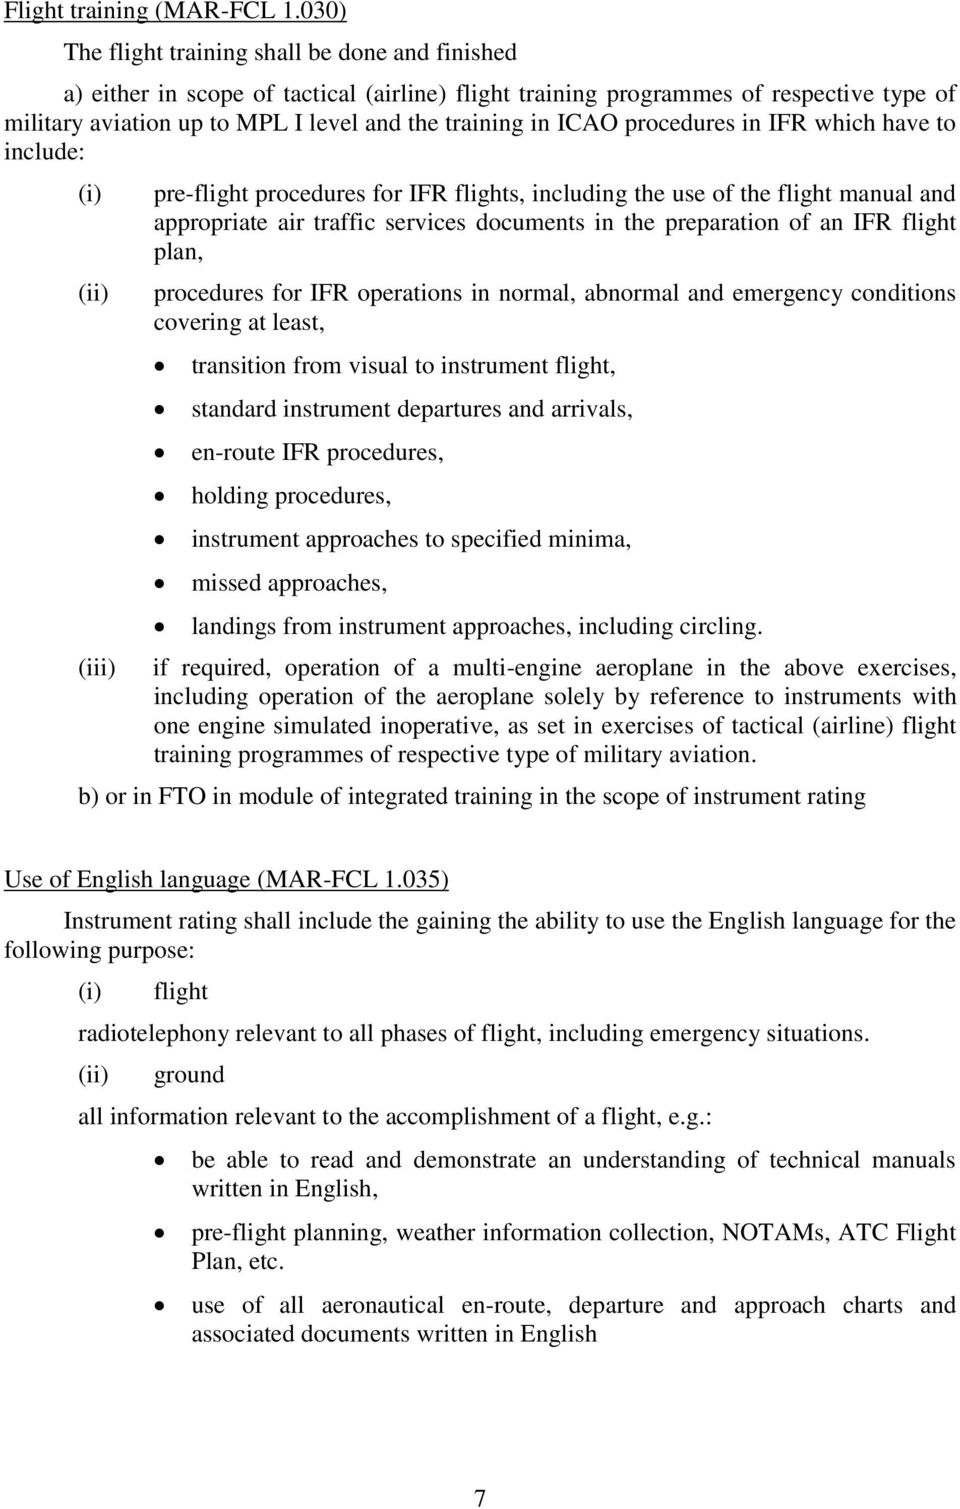 ICAO procedures in IFR which have to include: (i) (ii) (iii) pre-flight procedures for IFR flights, including the use of the flight manual and appropriate air traffic services documents in the